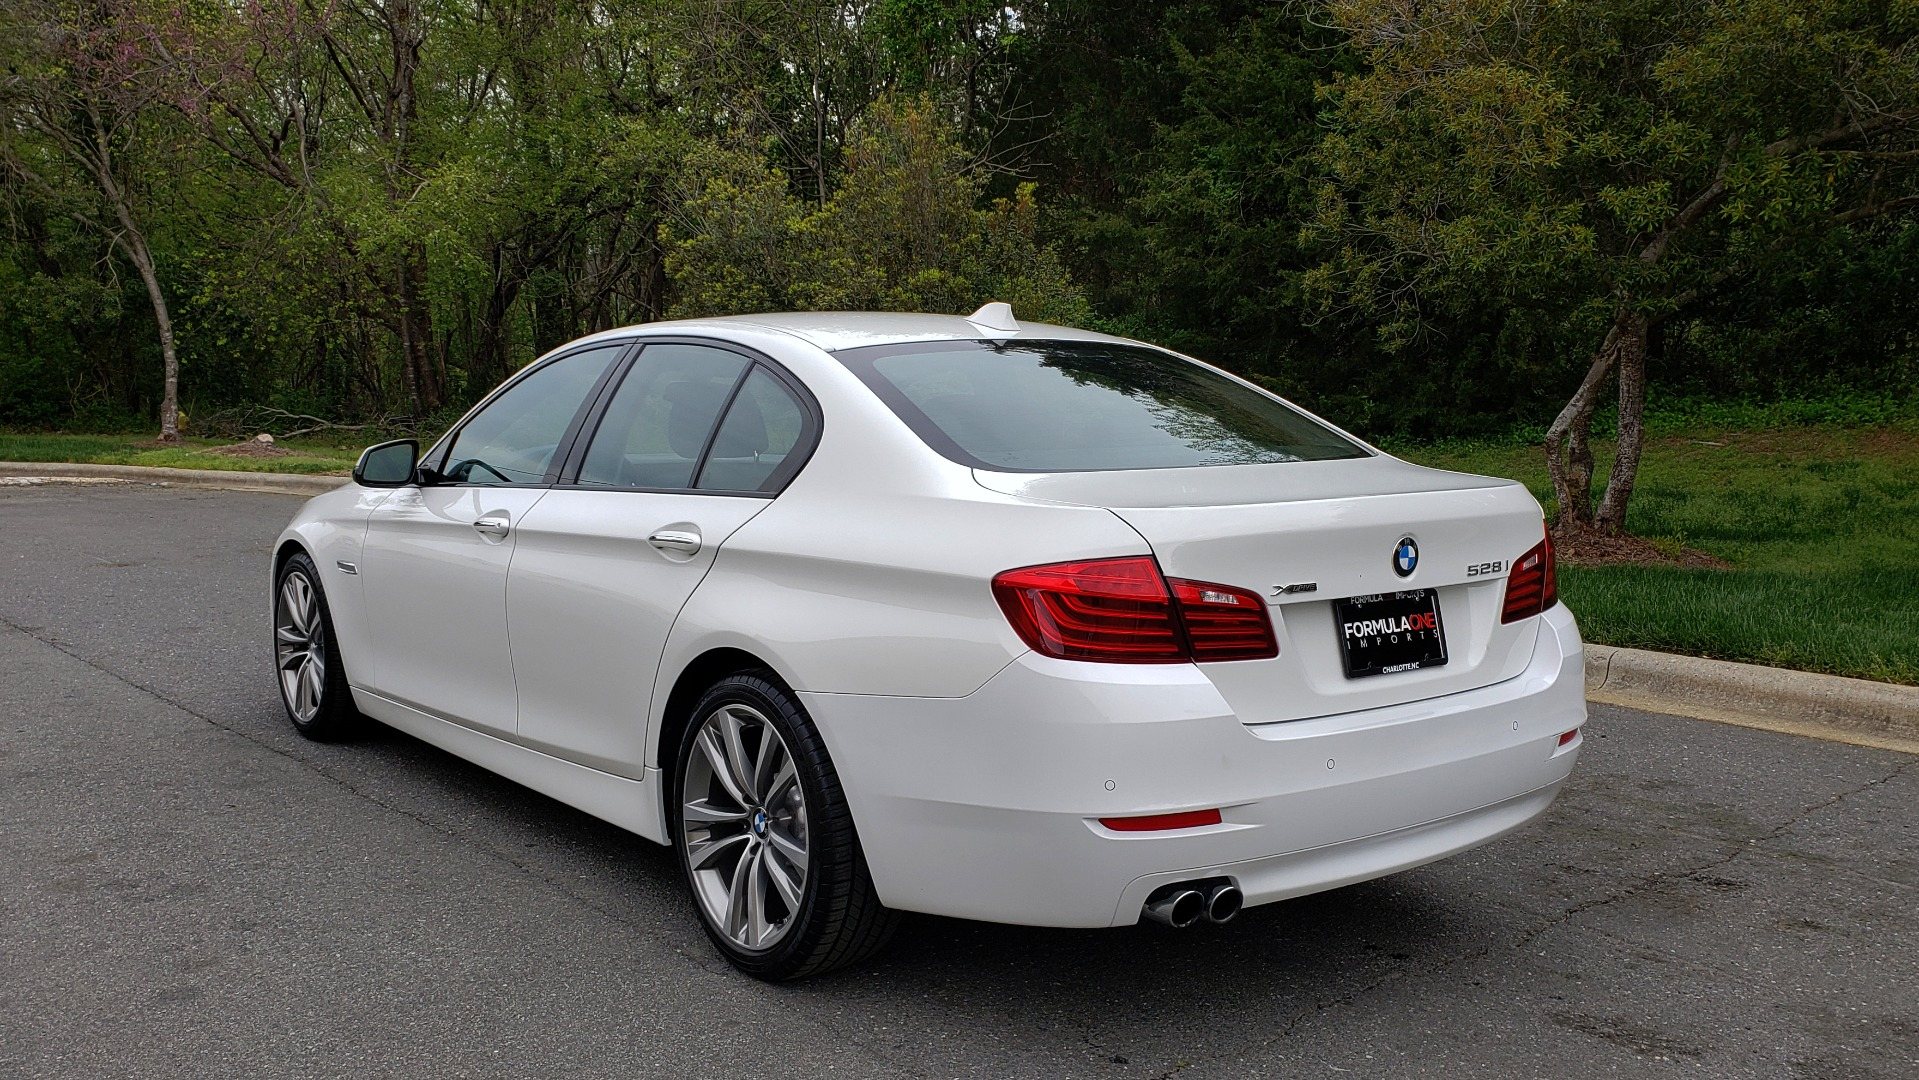 Used 2016 BMW 5 SERIES 528I XDRIVE SPECIAL EDITION / NAV / SUNROOF /HTD STS / REARVIEW for sale Sold at Formula Imports in Charlotte NC 28227 3